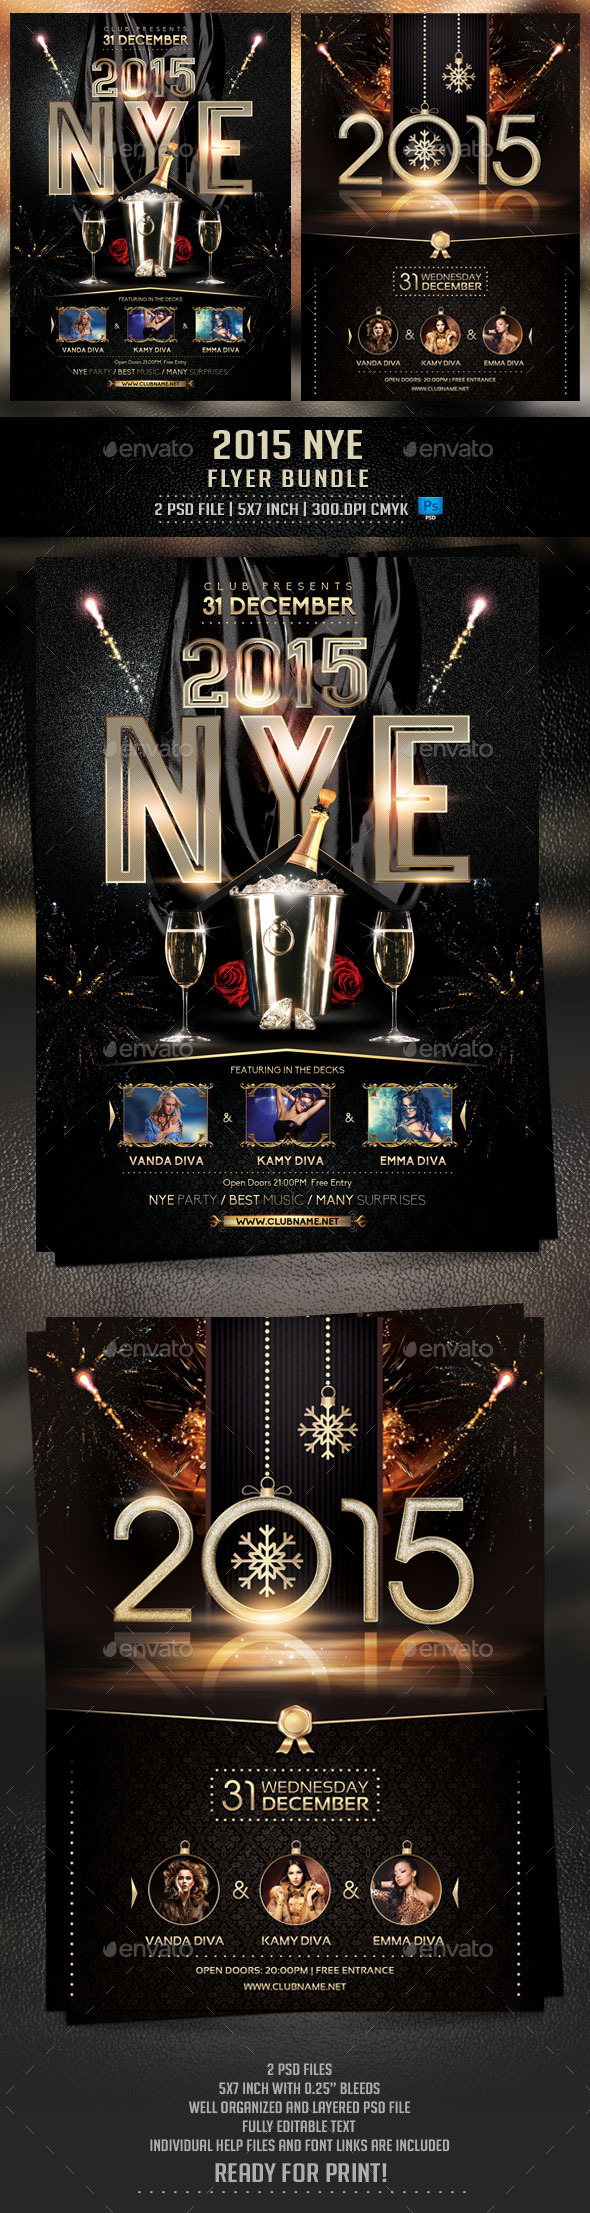 GraphicRiver 2015 NYE Flyer Bundle 9748087